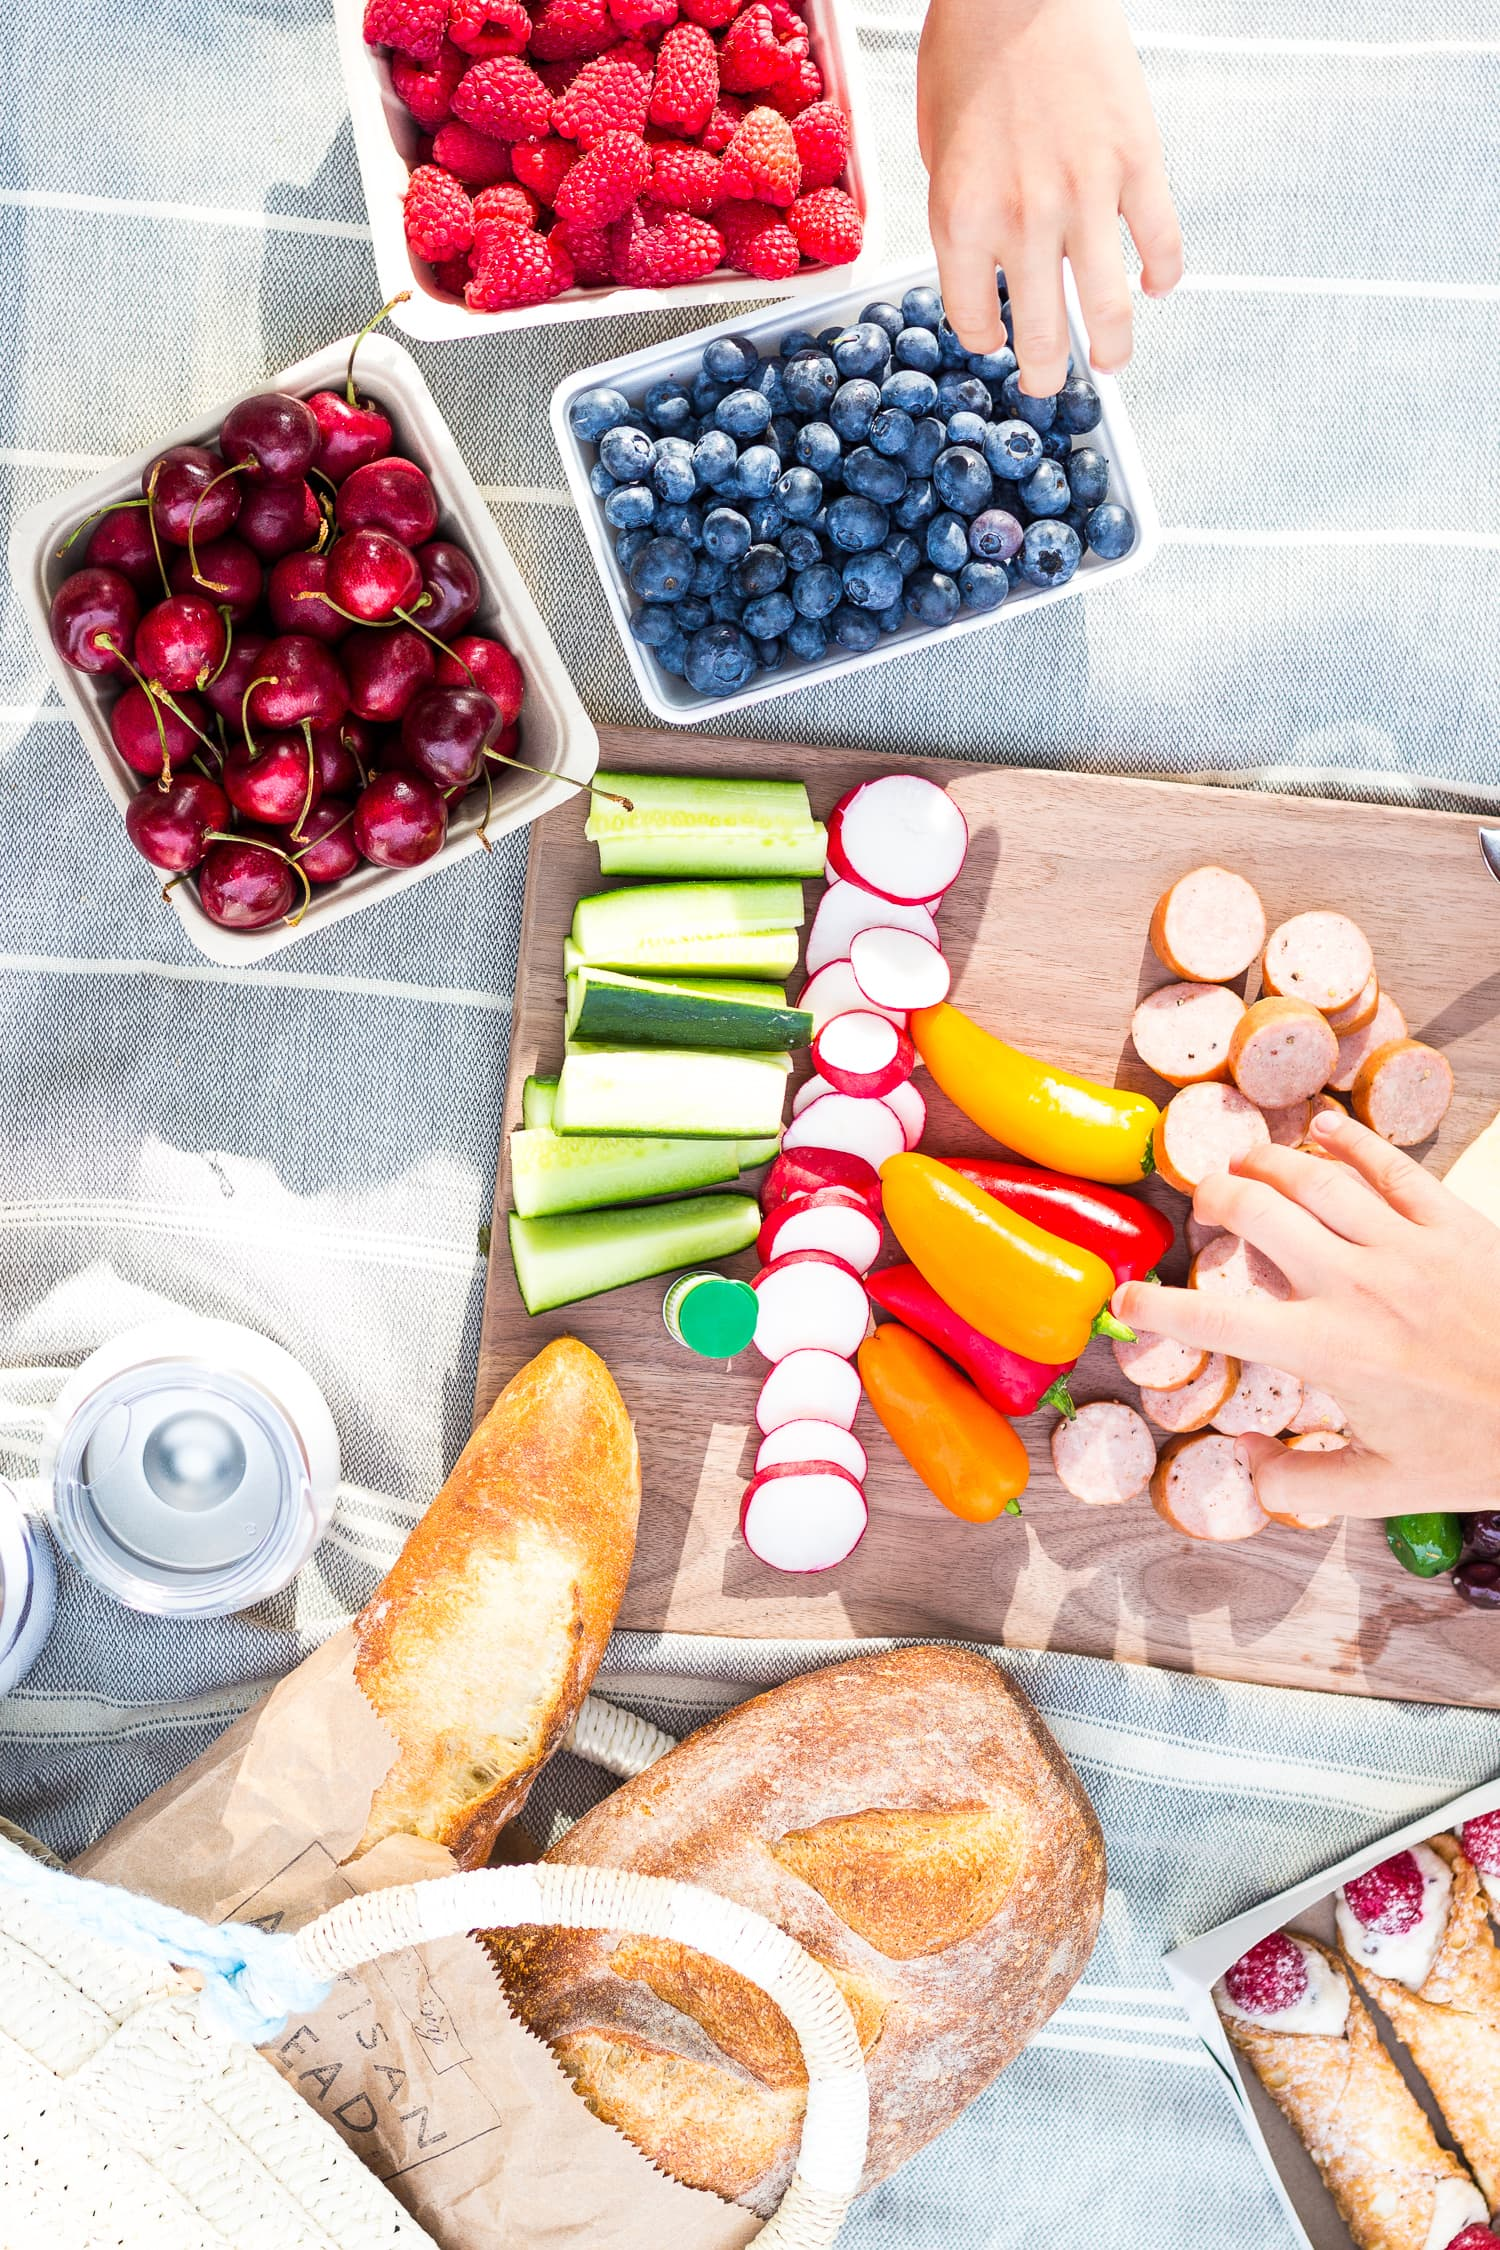 Overhead shot of picnic food on a blanket with two hands reaching in